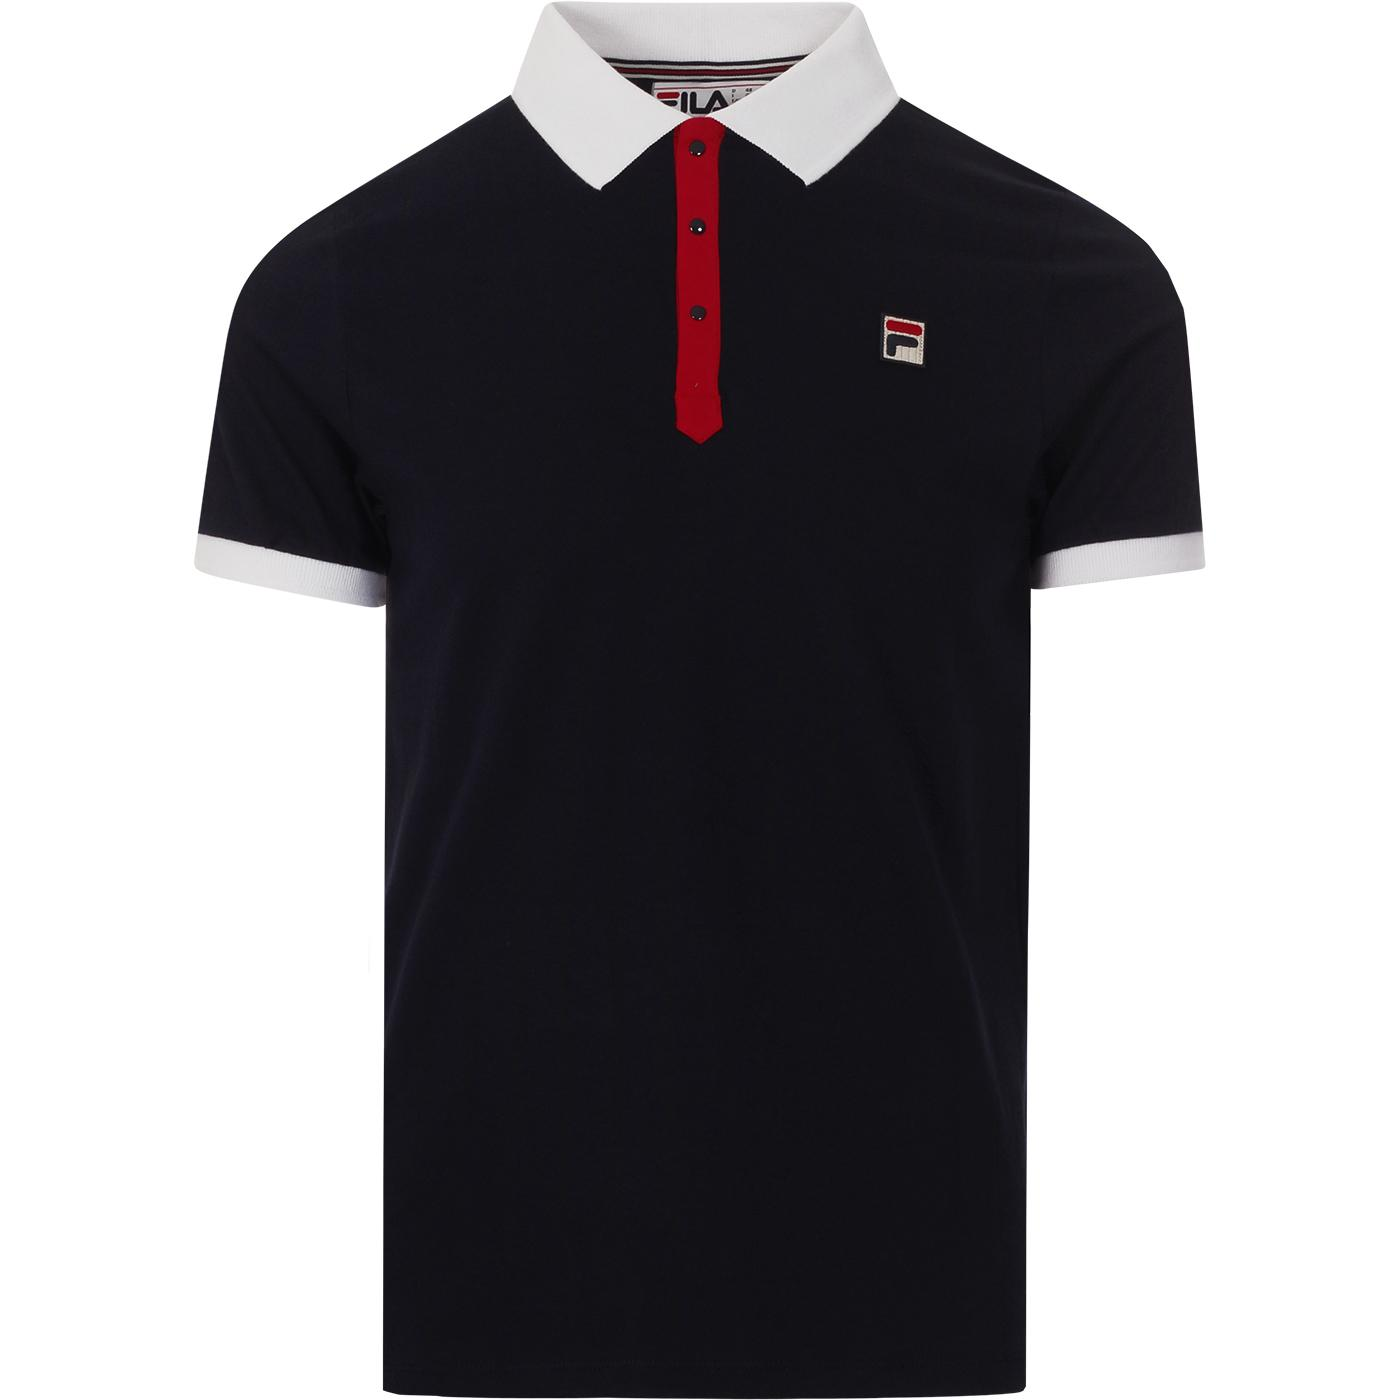 BB1 FILA VINTAGE Retro Borg Tennis Polo Peacoat